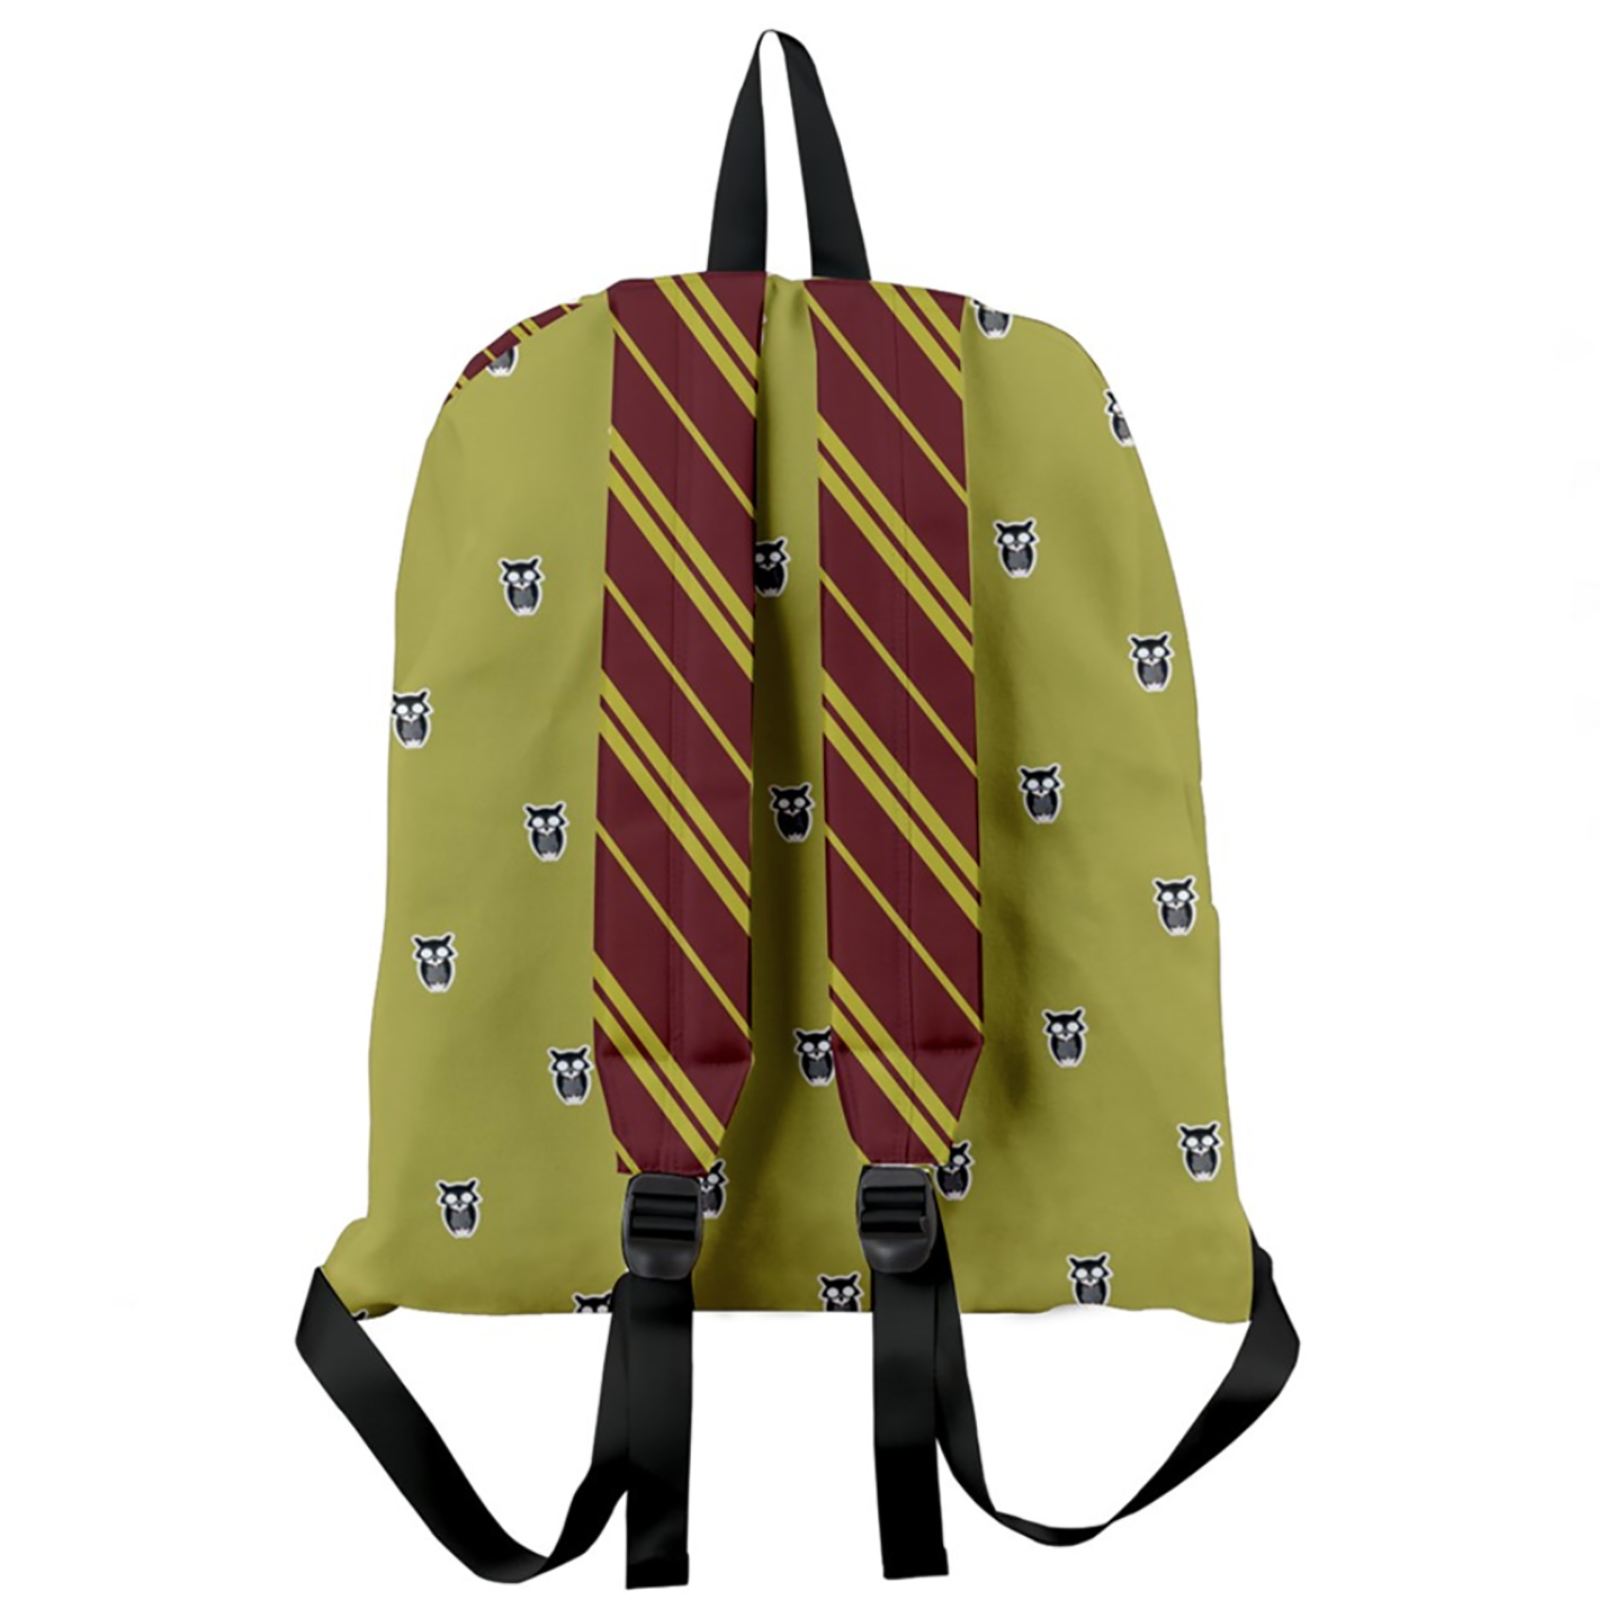 Red & Yellow Giant Backpack - Inspired by Gryffindor